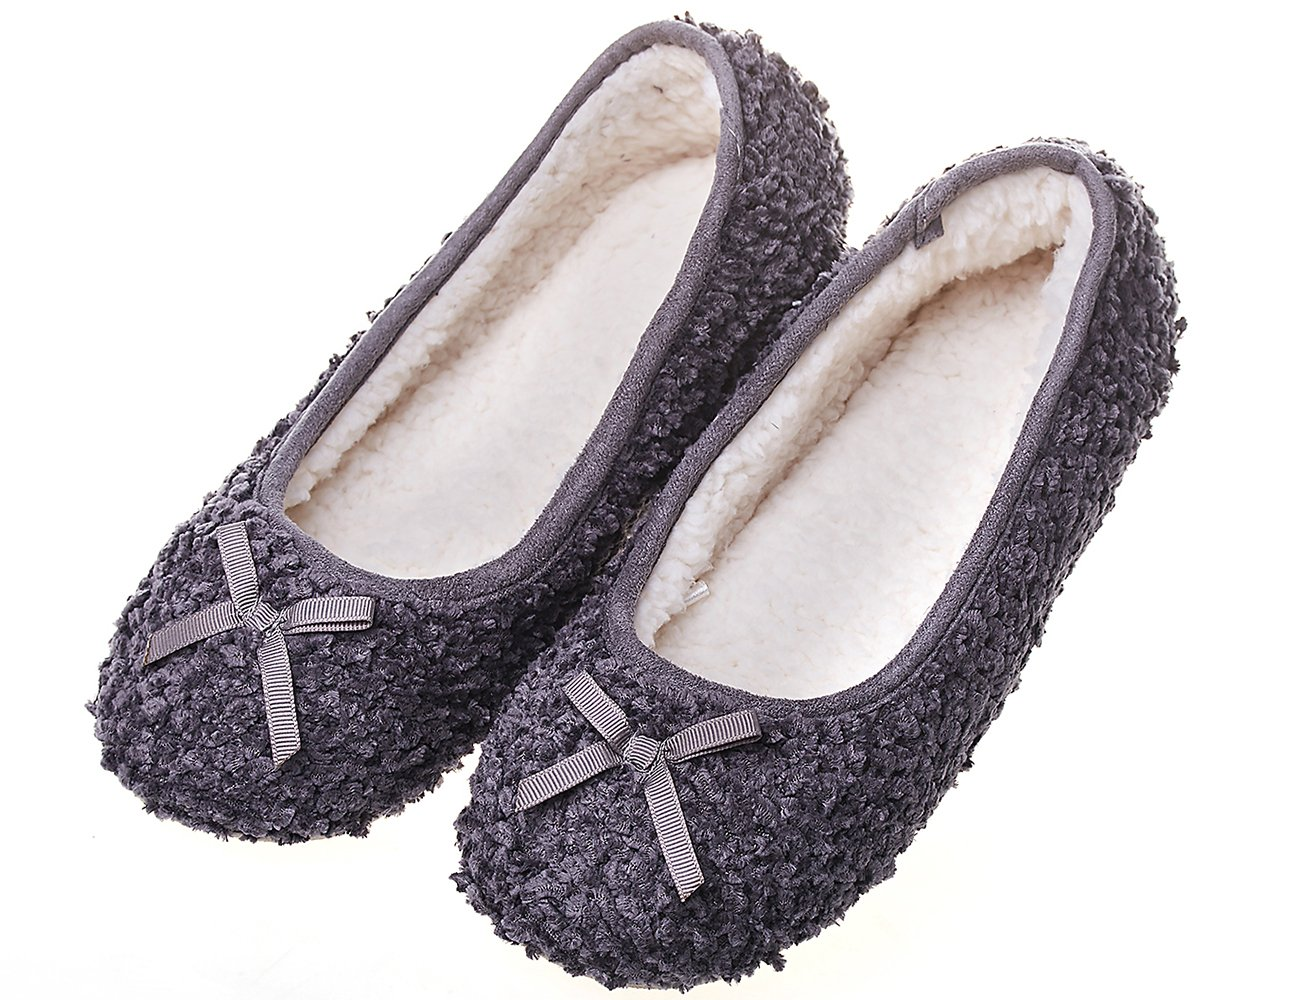 MIXIN Women's Elegant Comfy Litchi Cashmere Soft Sole Indoor Ballerina Flats House Slippers Dark Grey Size 7